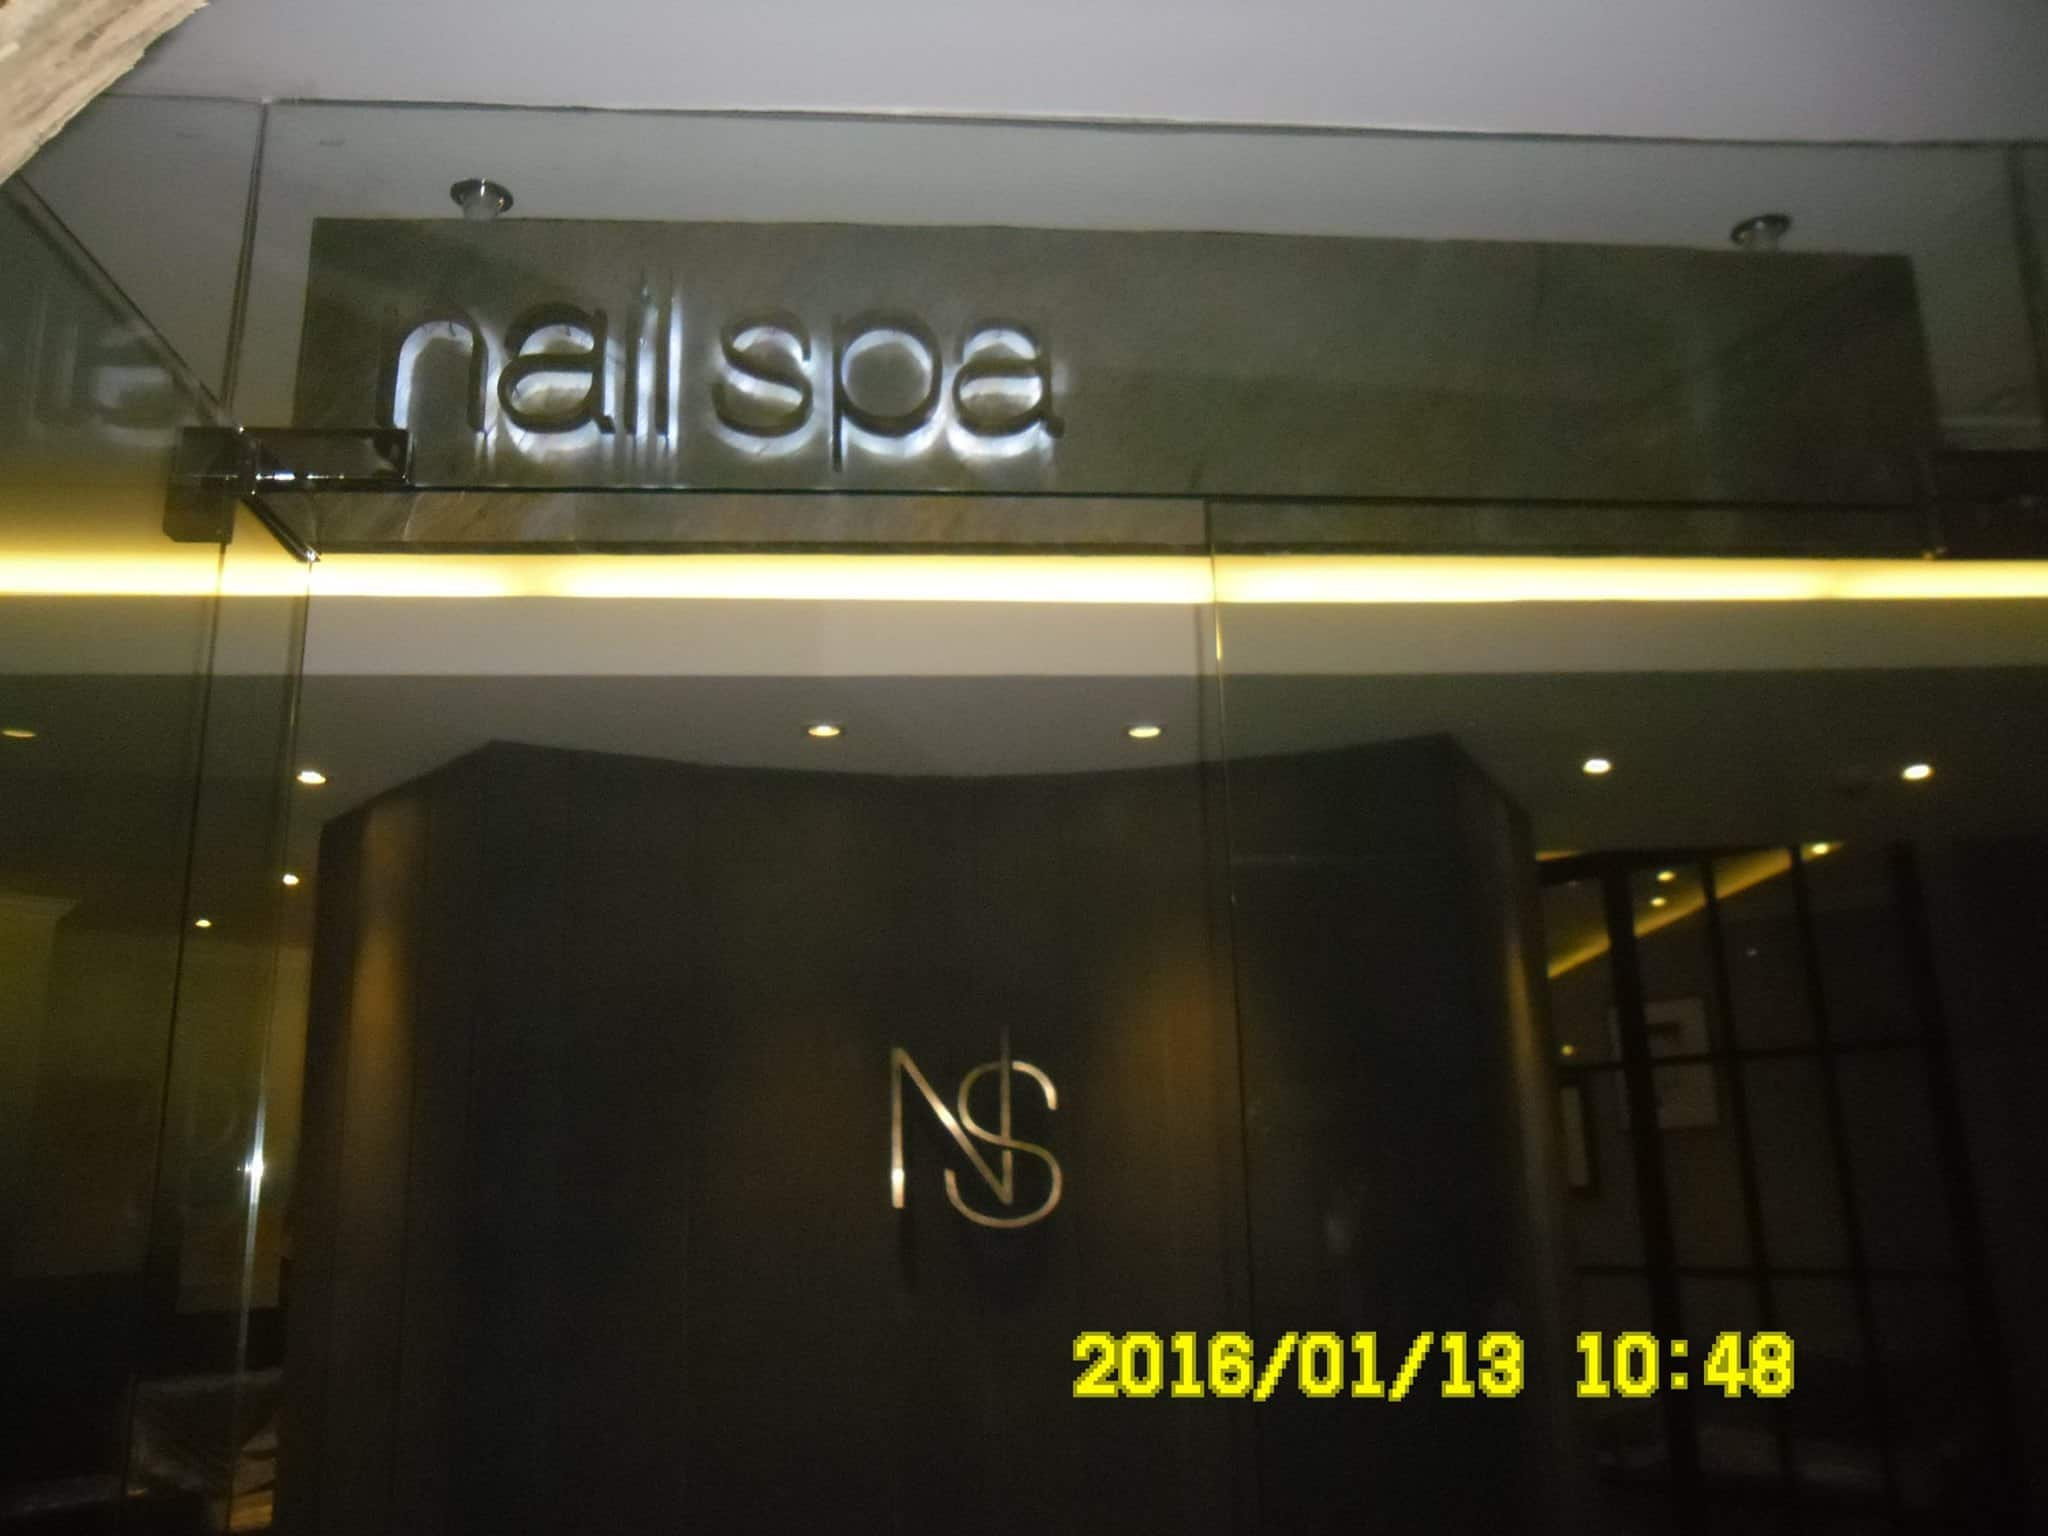 nail-spa-stainless-signage